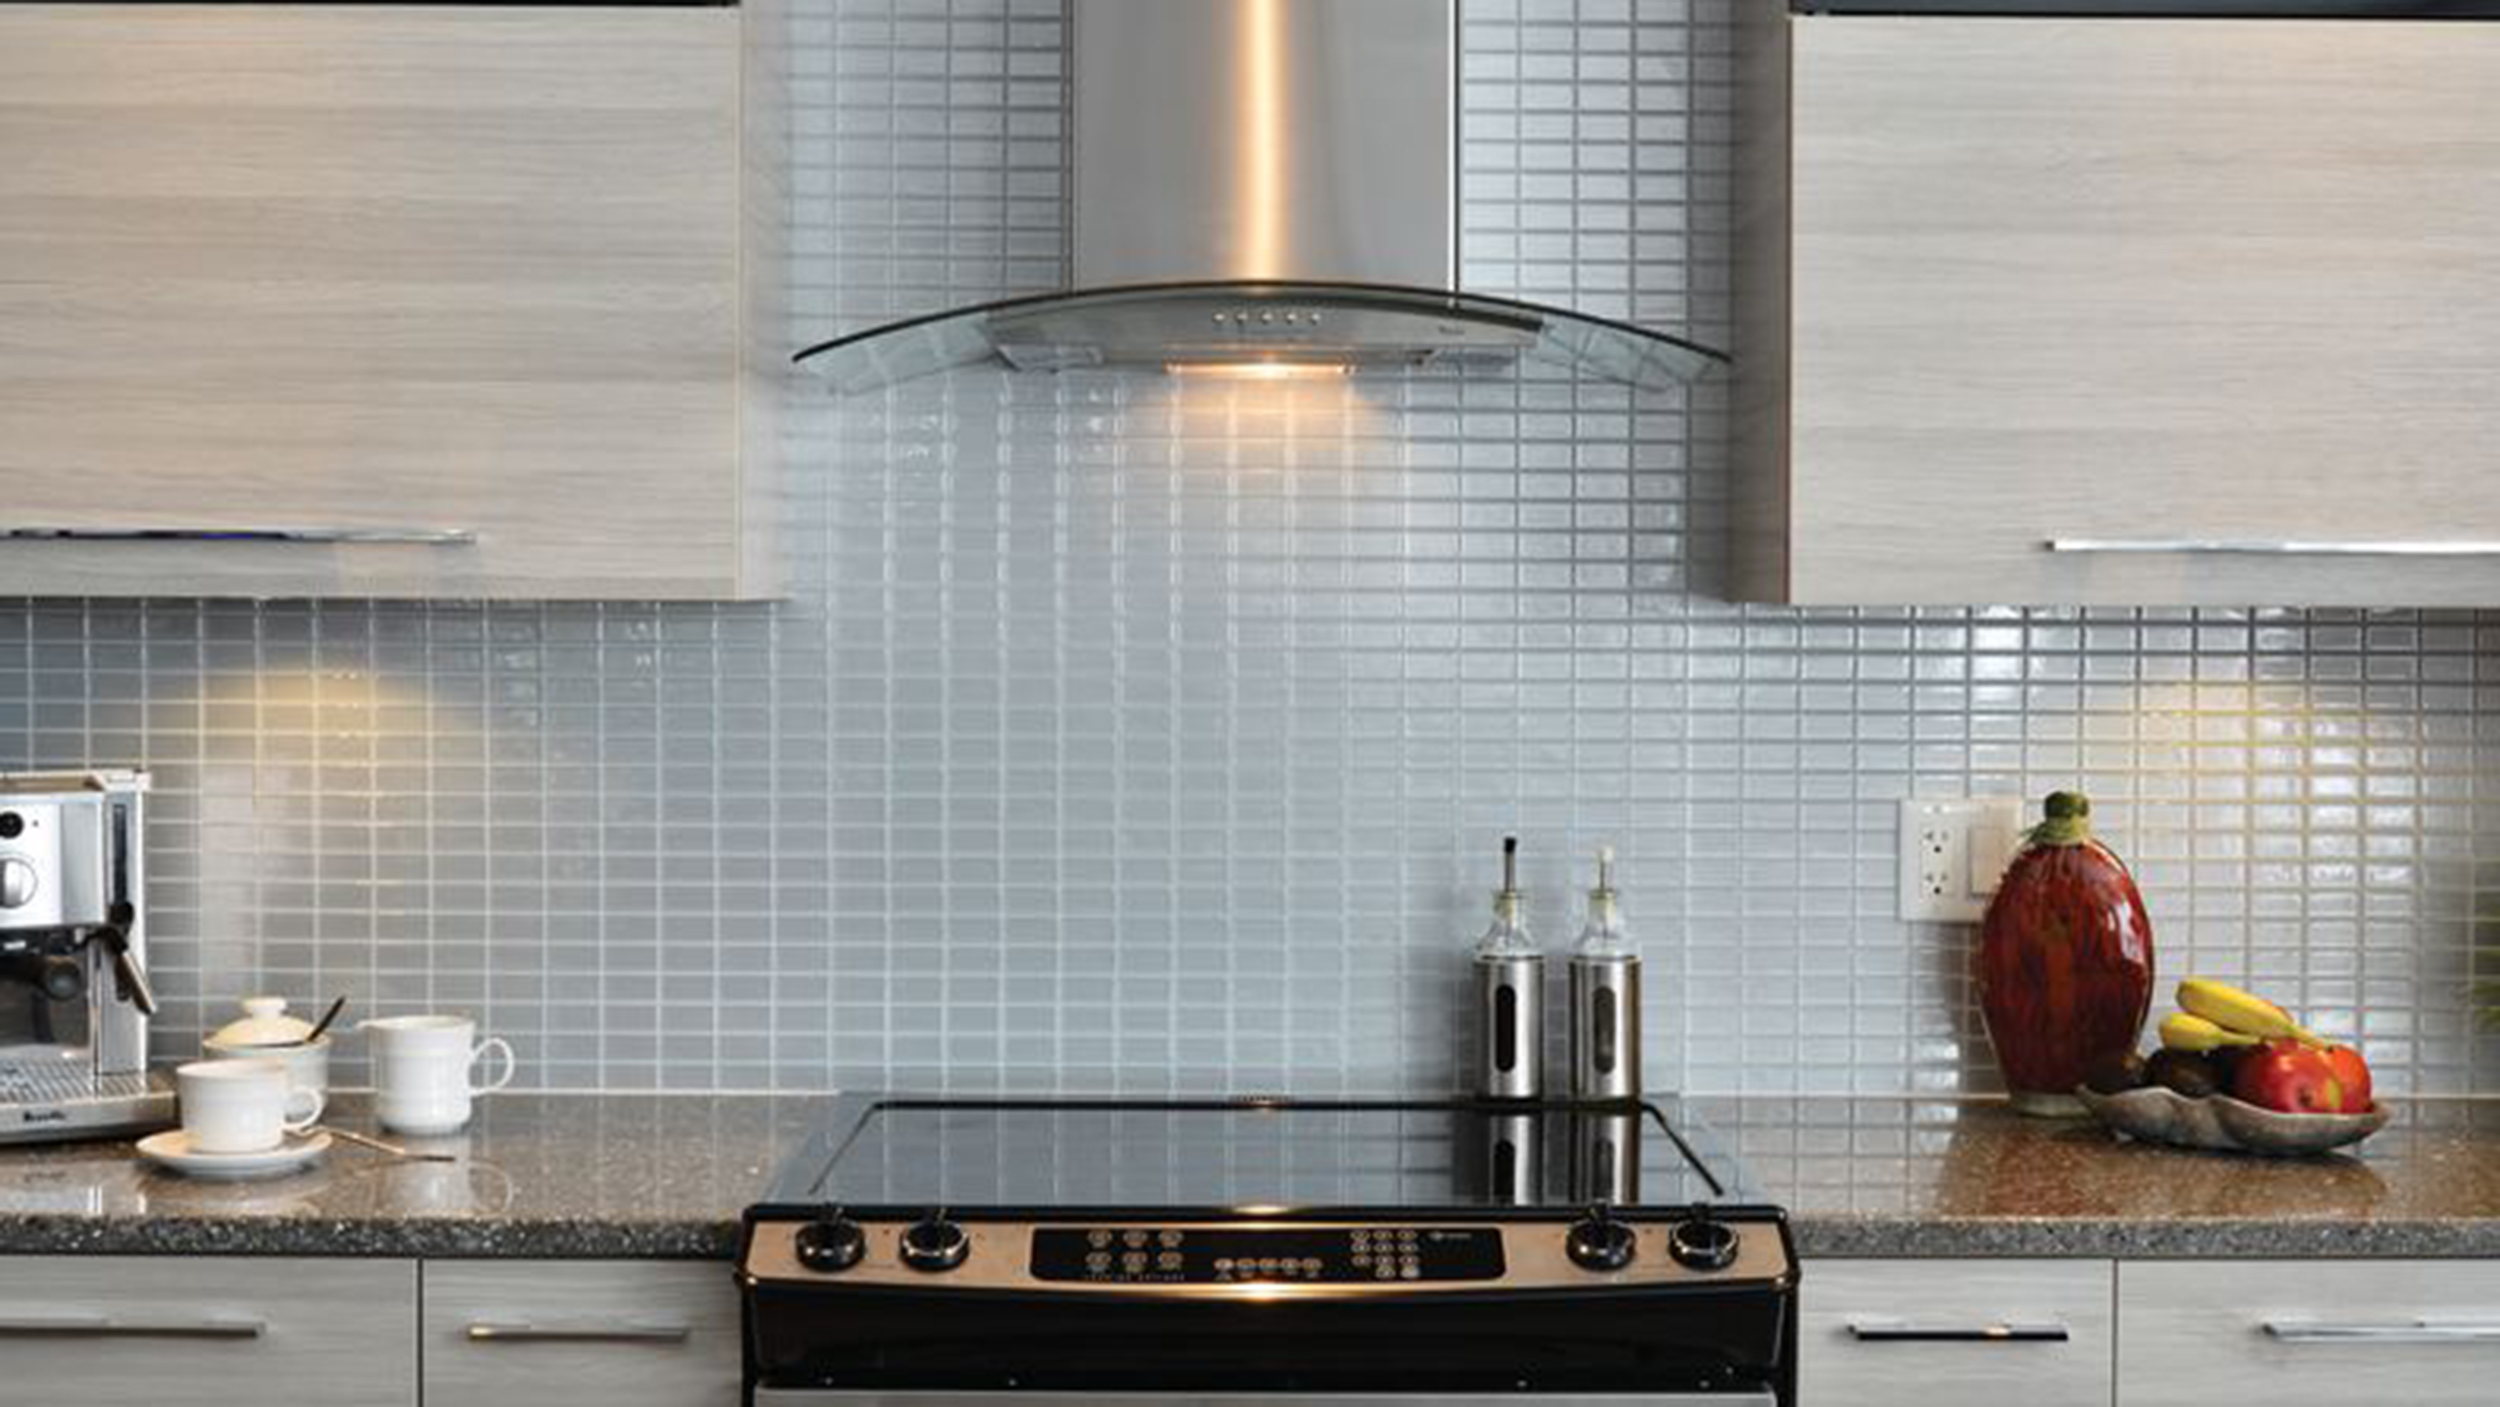 Kitchen tile makeover use smart tiles to update your backsplash kitchen tile makeover use smart tiles to update your backsplash today dailygadgetfo Choice Image